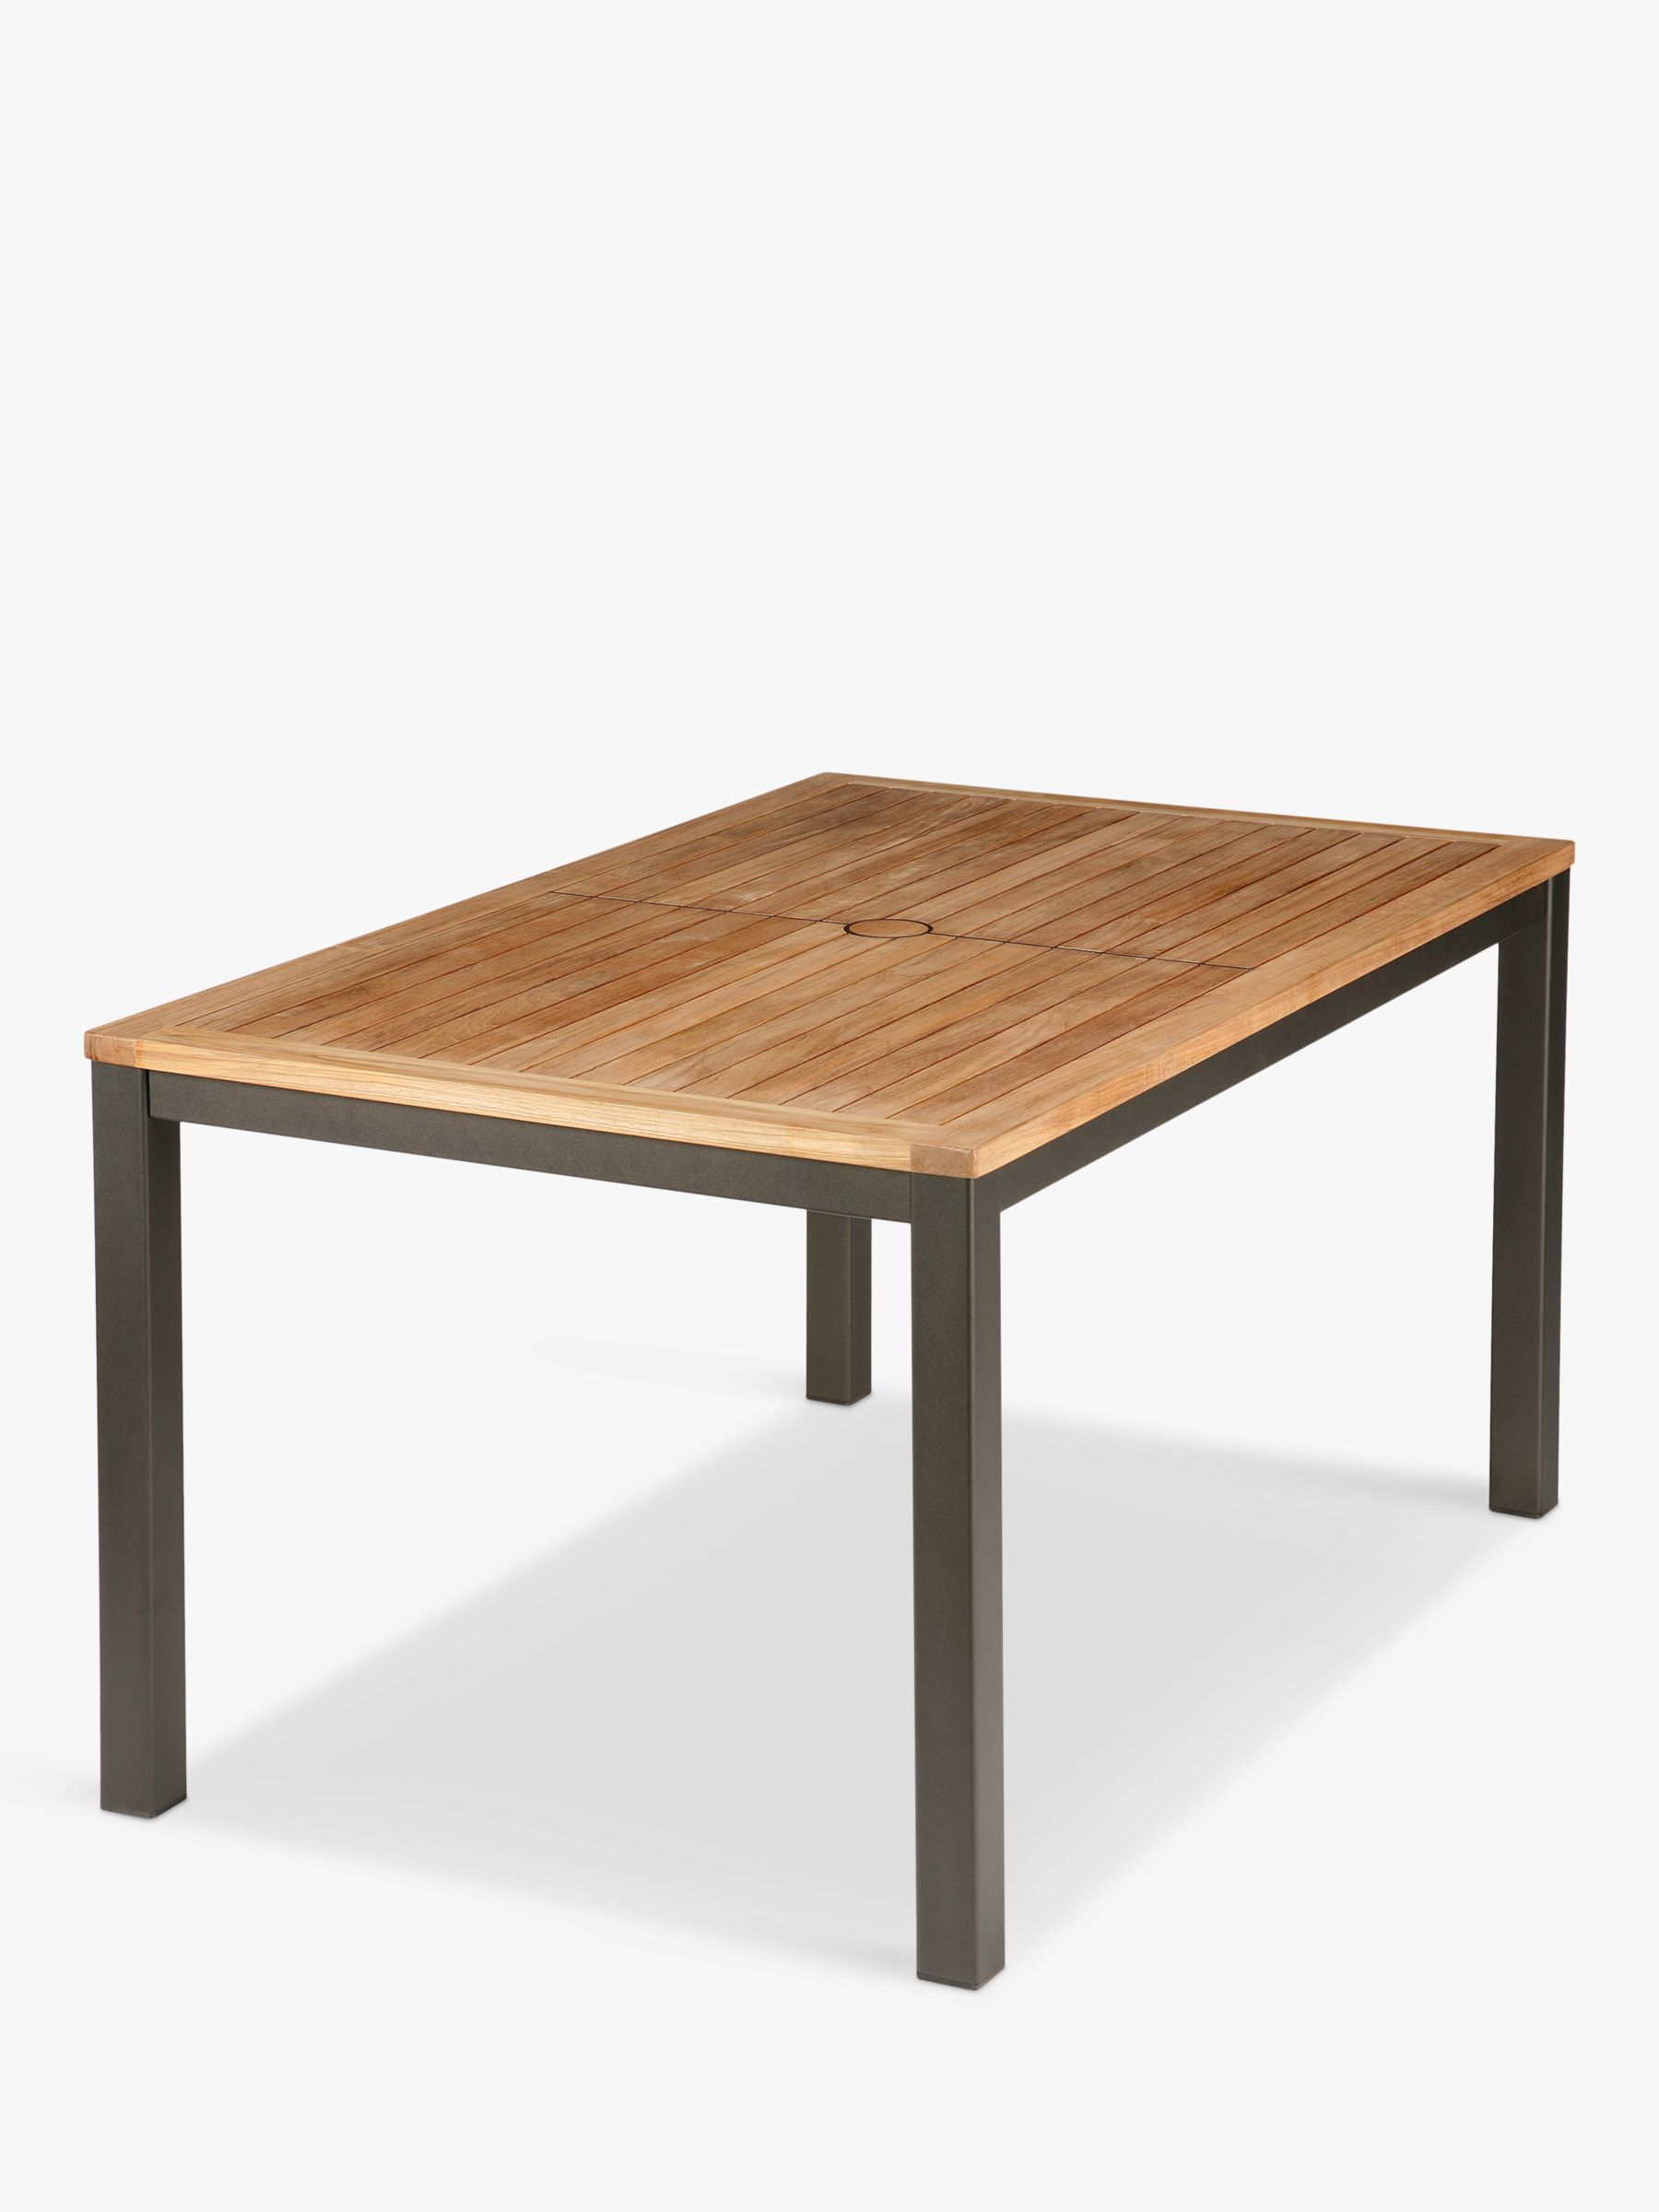 Barlow Tyrie Barlow Tyrie Aura 6-Seater Outdoor Dining Table, FSC-Certified (Teak), Graphite